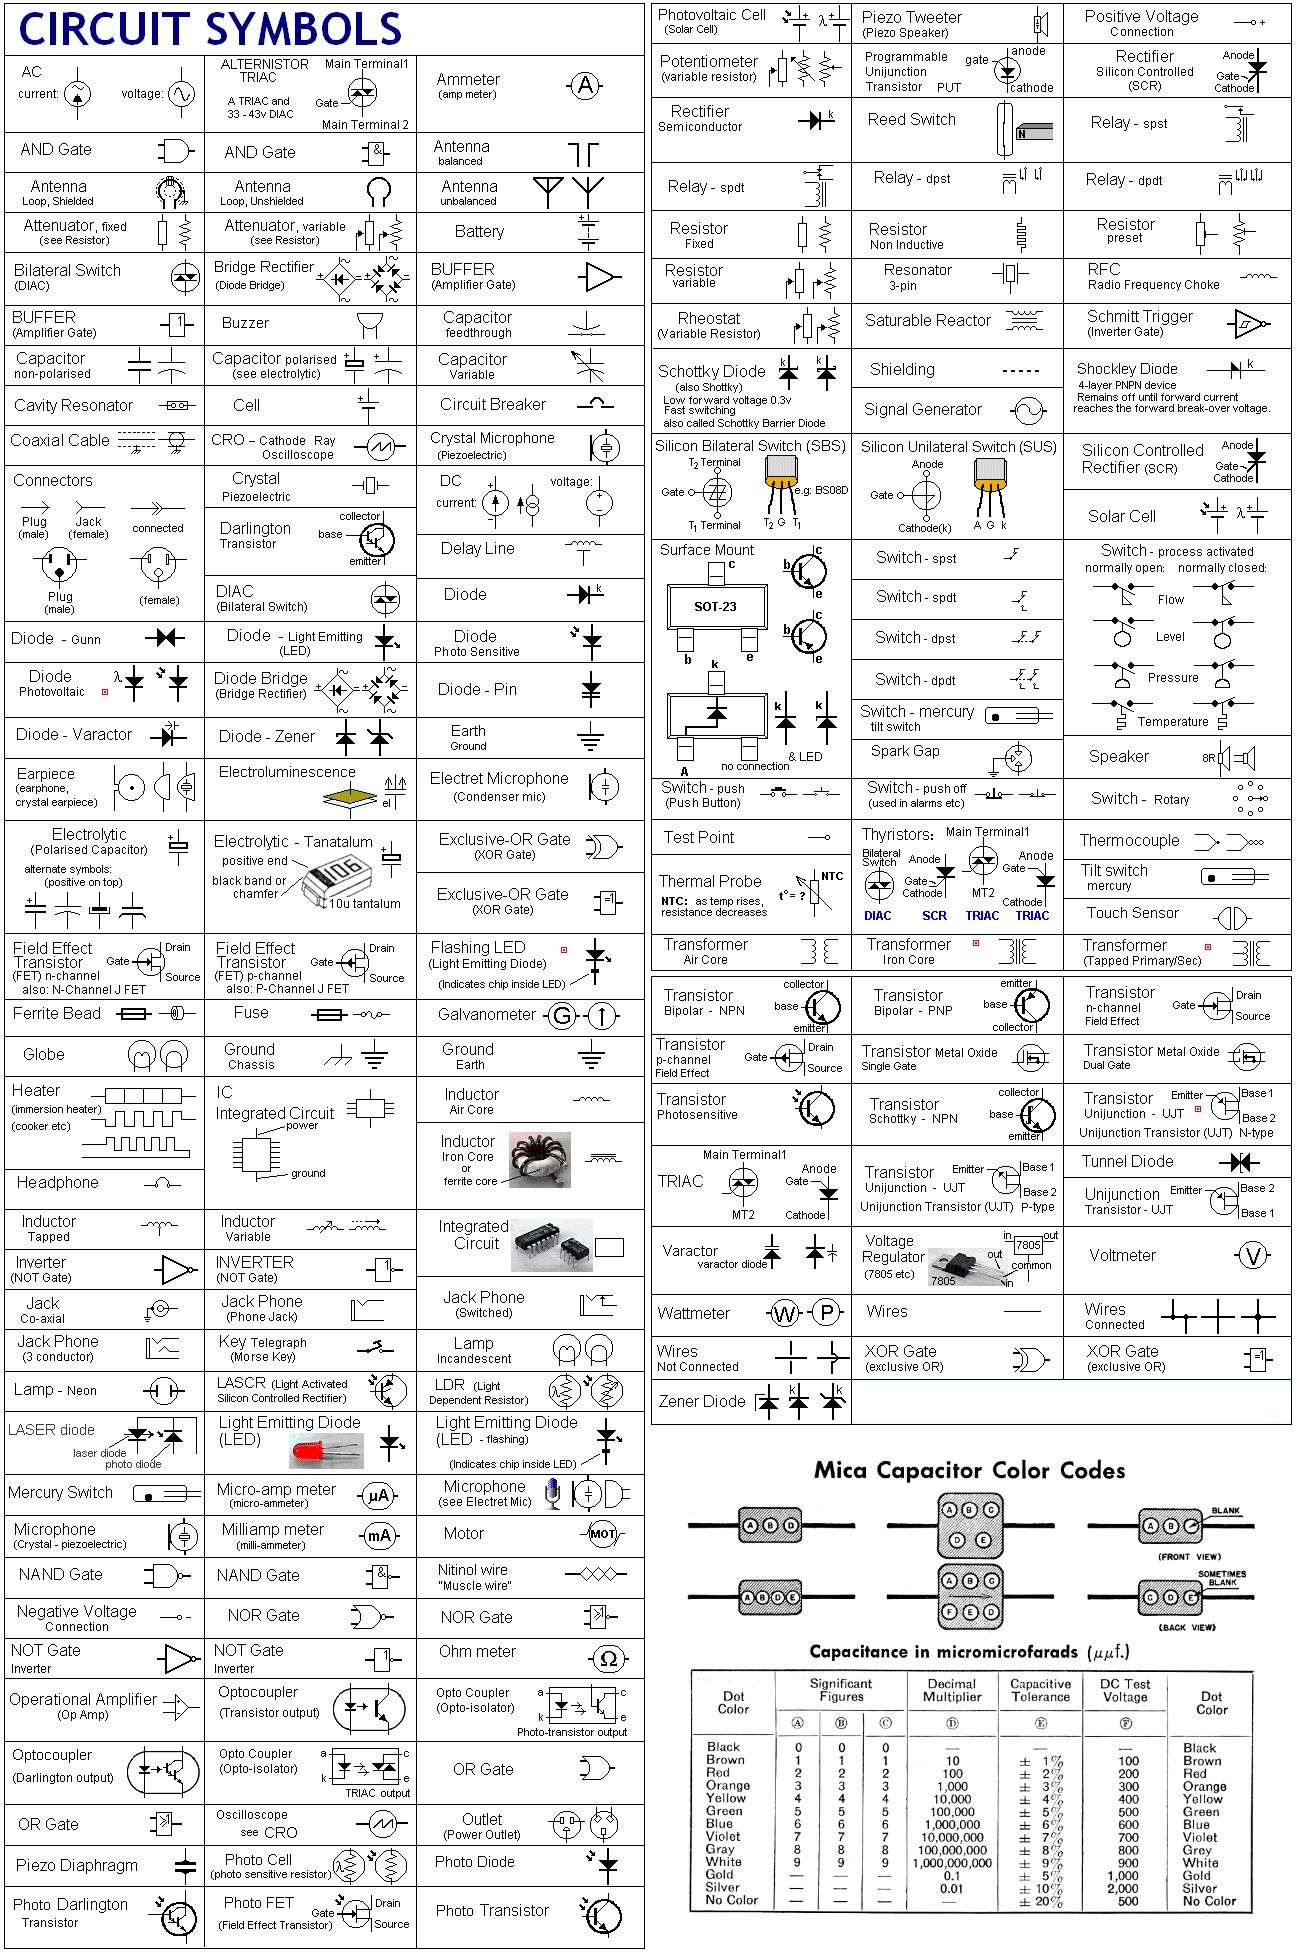 Boeing Wiring Diagram Symbols : Images about schematic symbols on pinterest buzzer